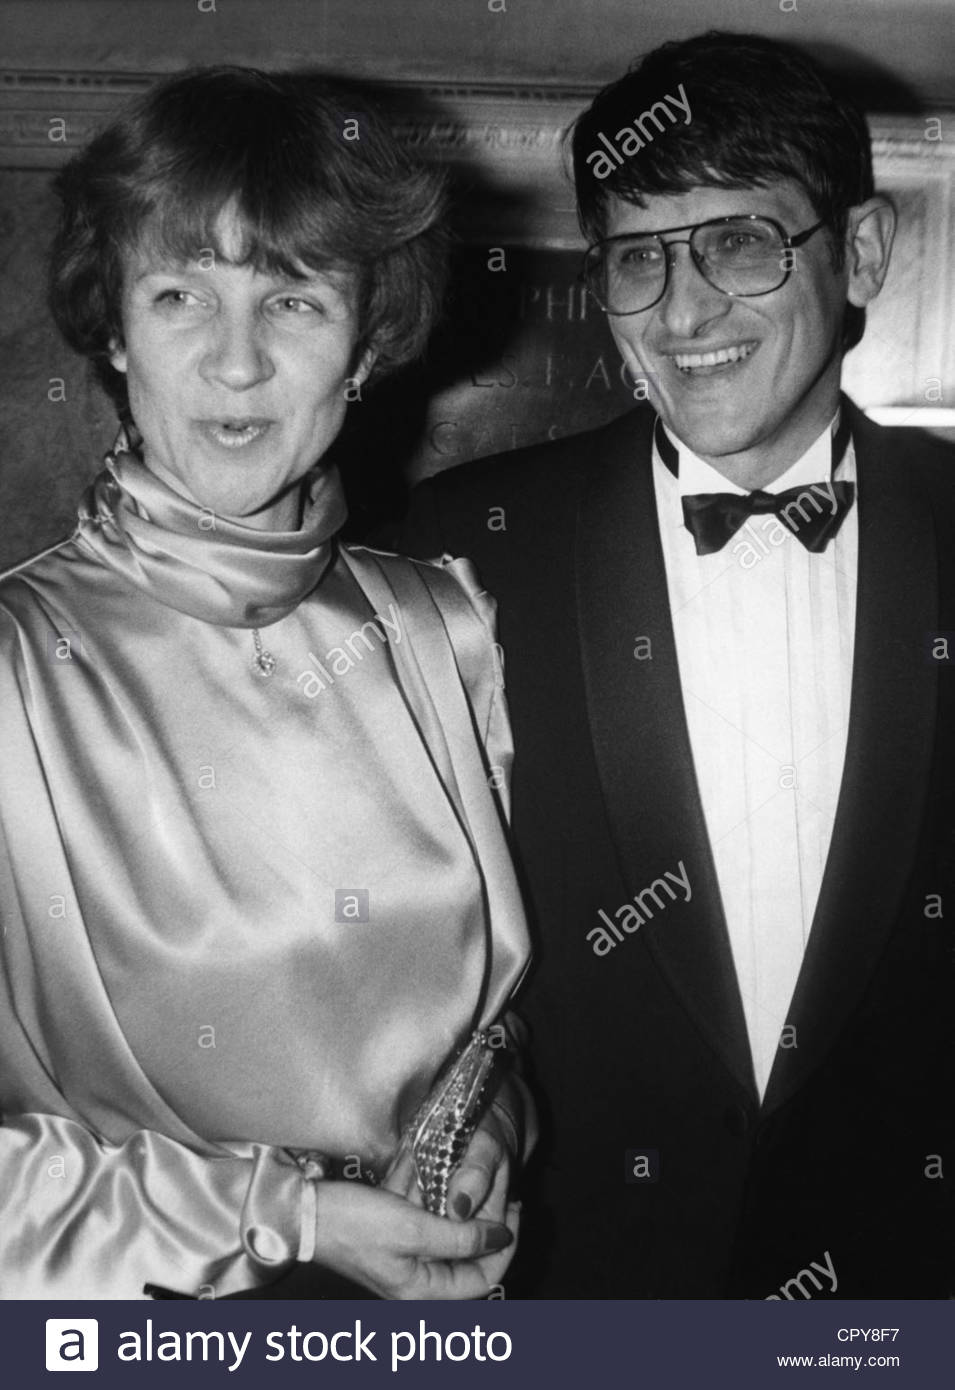 Klitzing, Klaus v., * 28.6.1943, German physicist, Nobel Prize laureate, half length, with his wife Renate, 1980s, Stock Photo